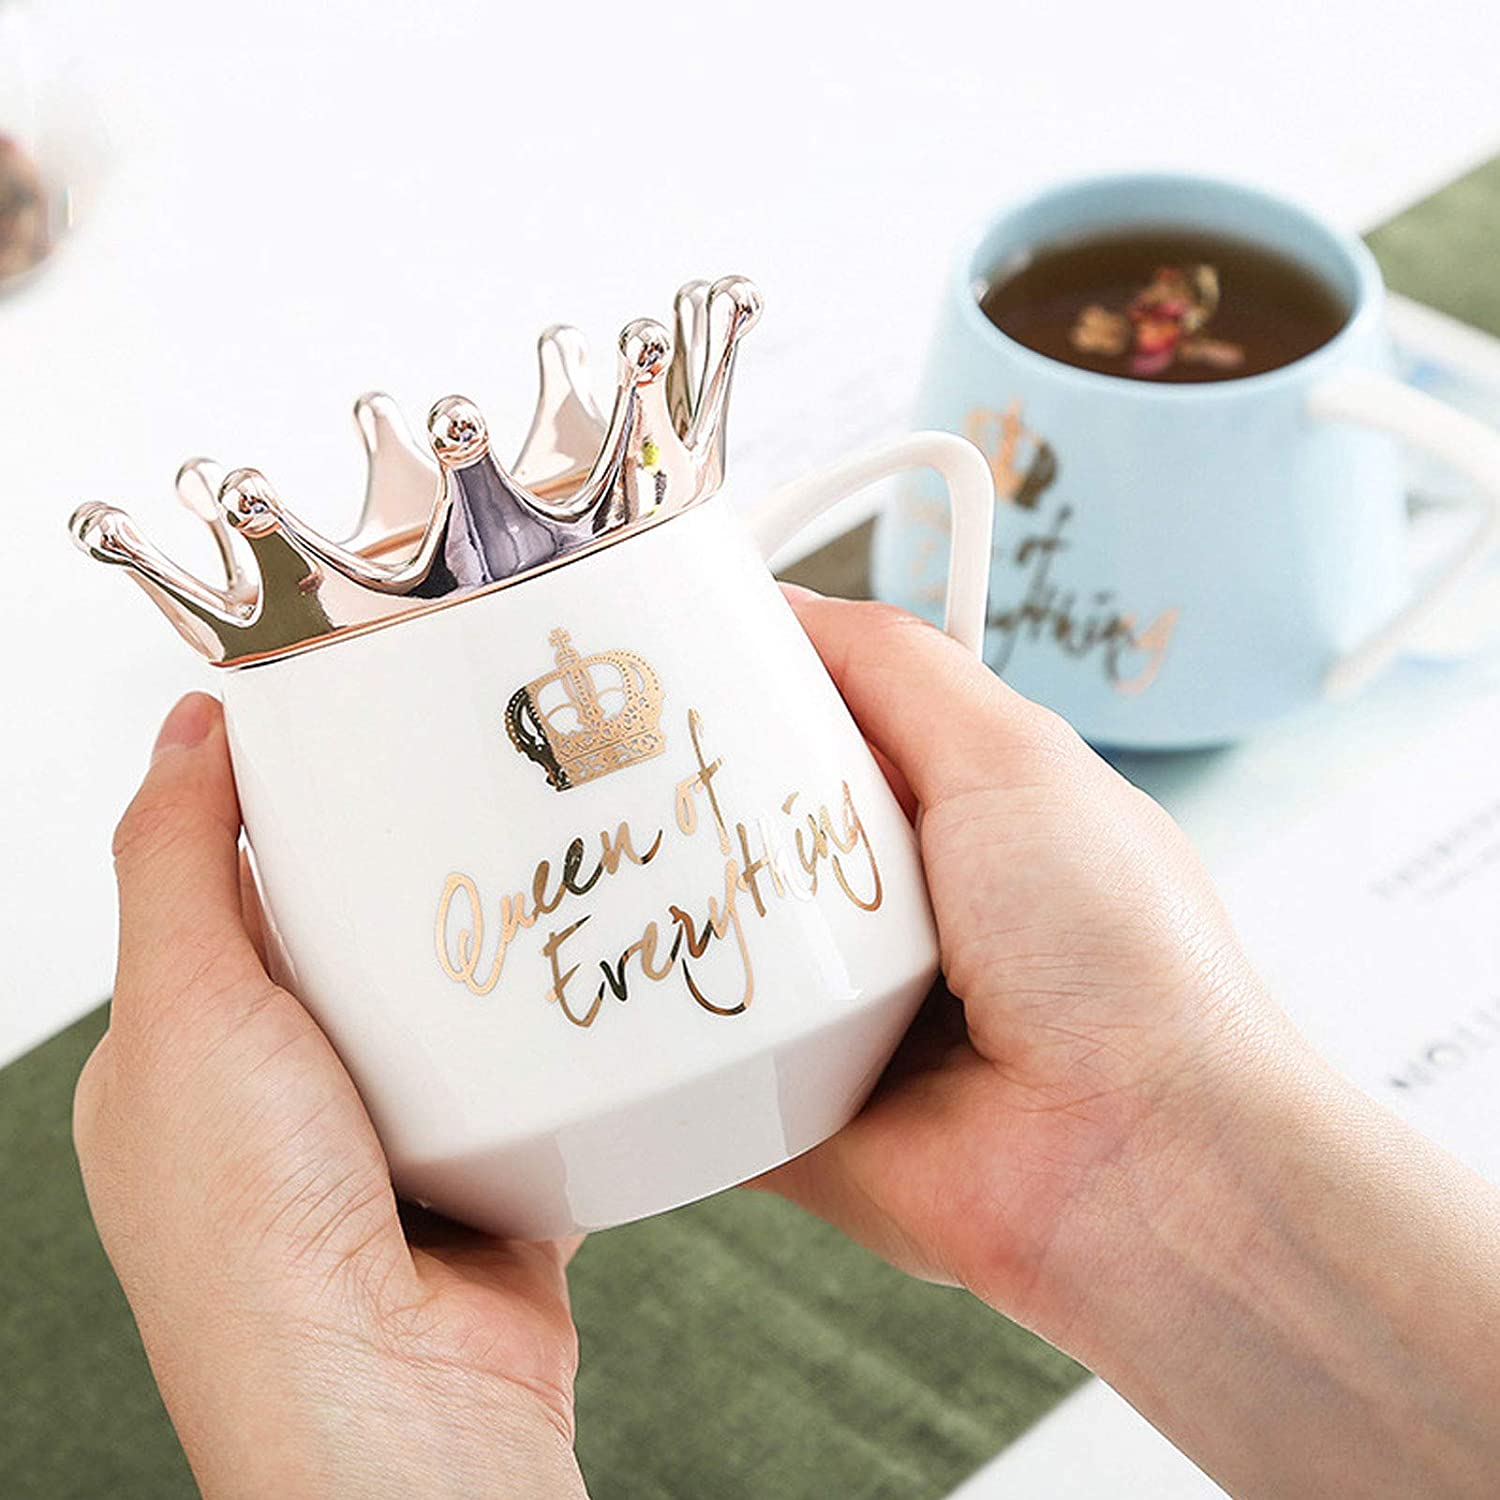 Black 12 oz Cute Coffee Mug /& Tea Cups With Crown Lid and Spoon Crown Queen Cup White Ceramic Coffee Cup Birthday Gifts for Women Girls